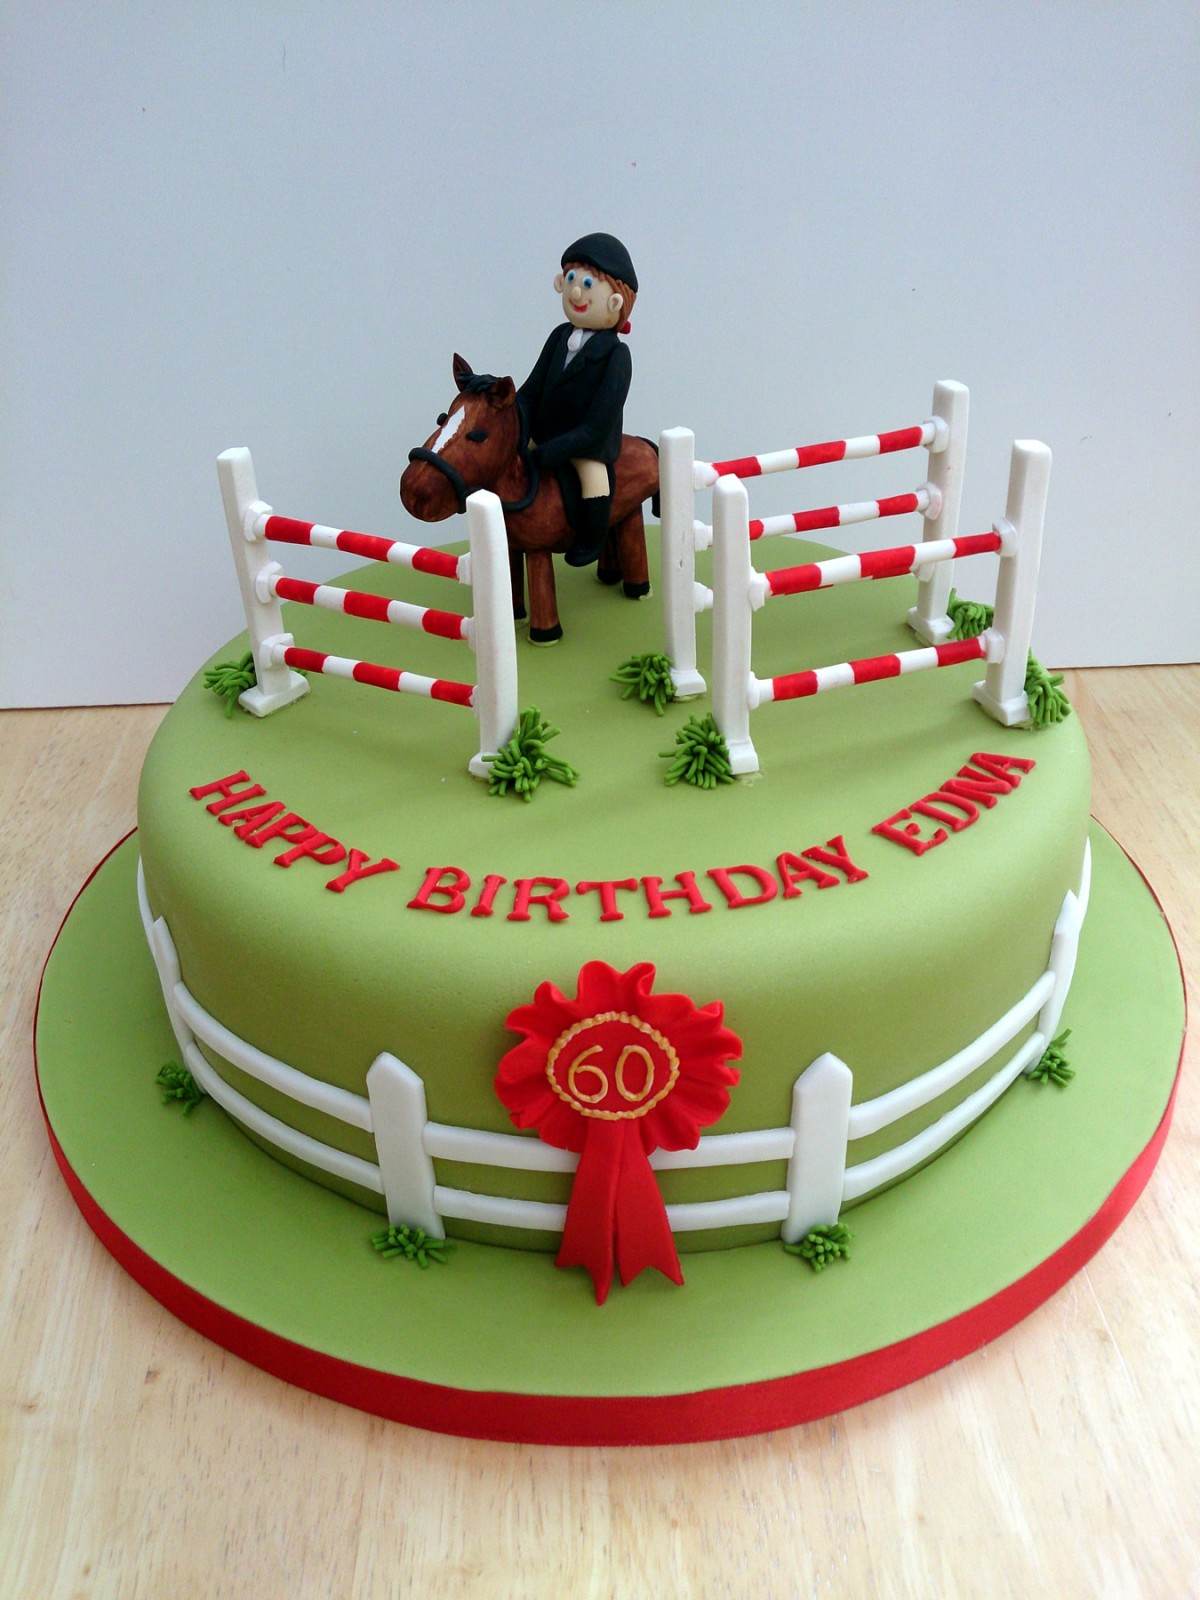 Show Jumping Themed Novelty Cake   Susie s Cakes